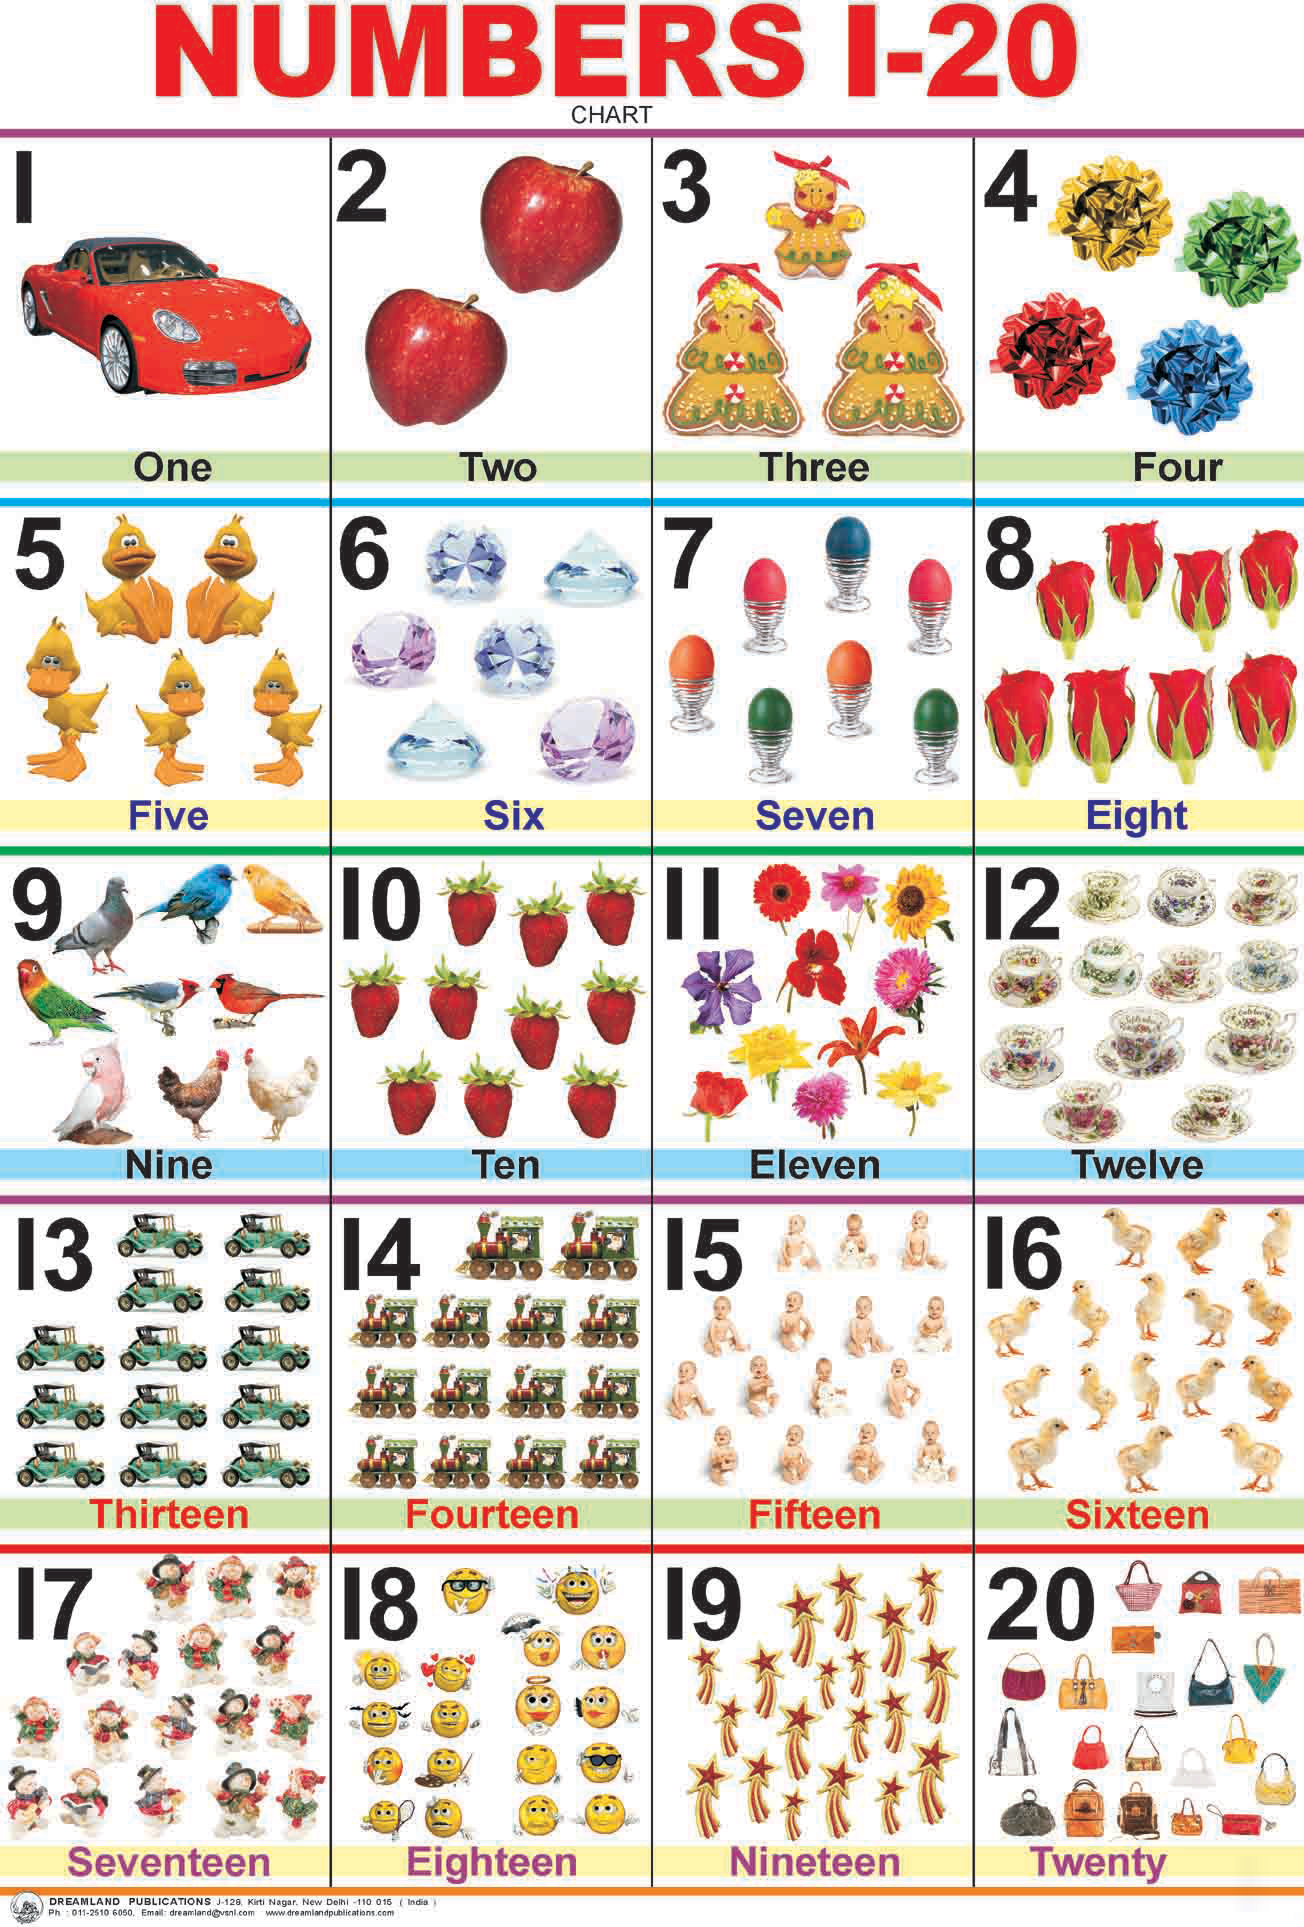 Dreamland Numbers 120 Chart Online In India Buy At Best